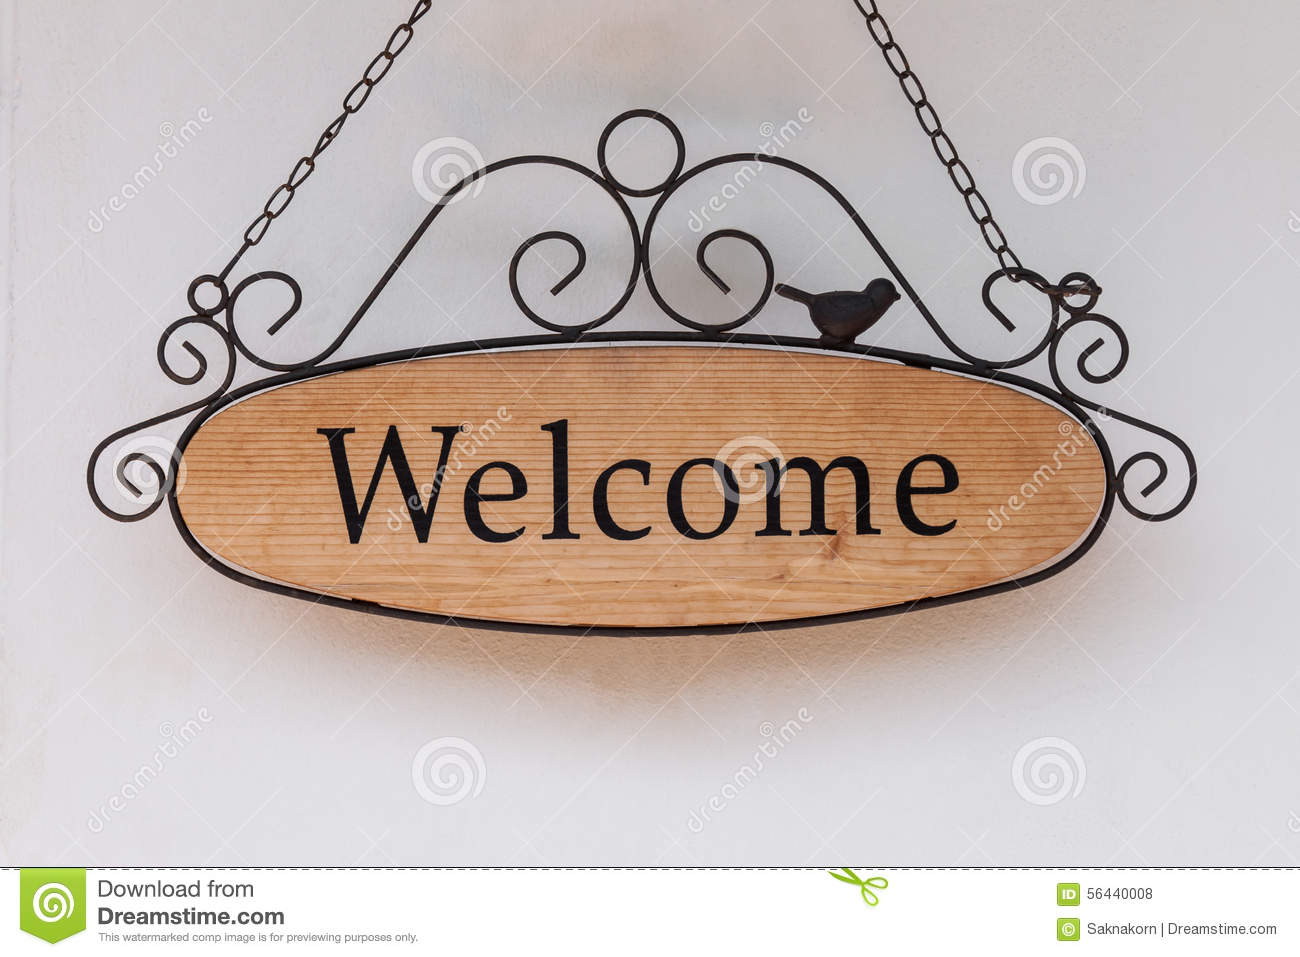 wood-welcome-sign-hanging-wall-restaurant-56440008.jpg